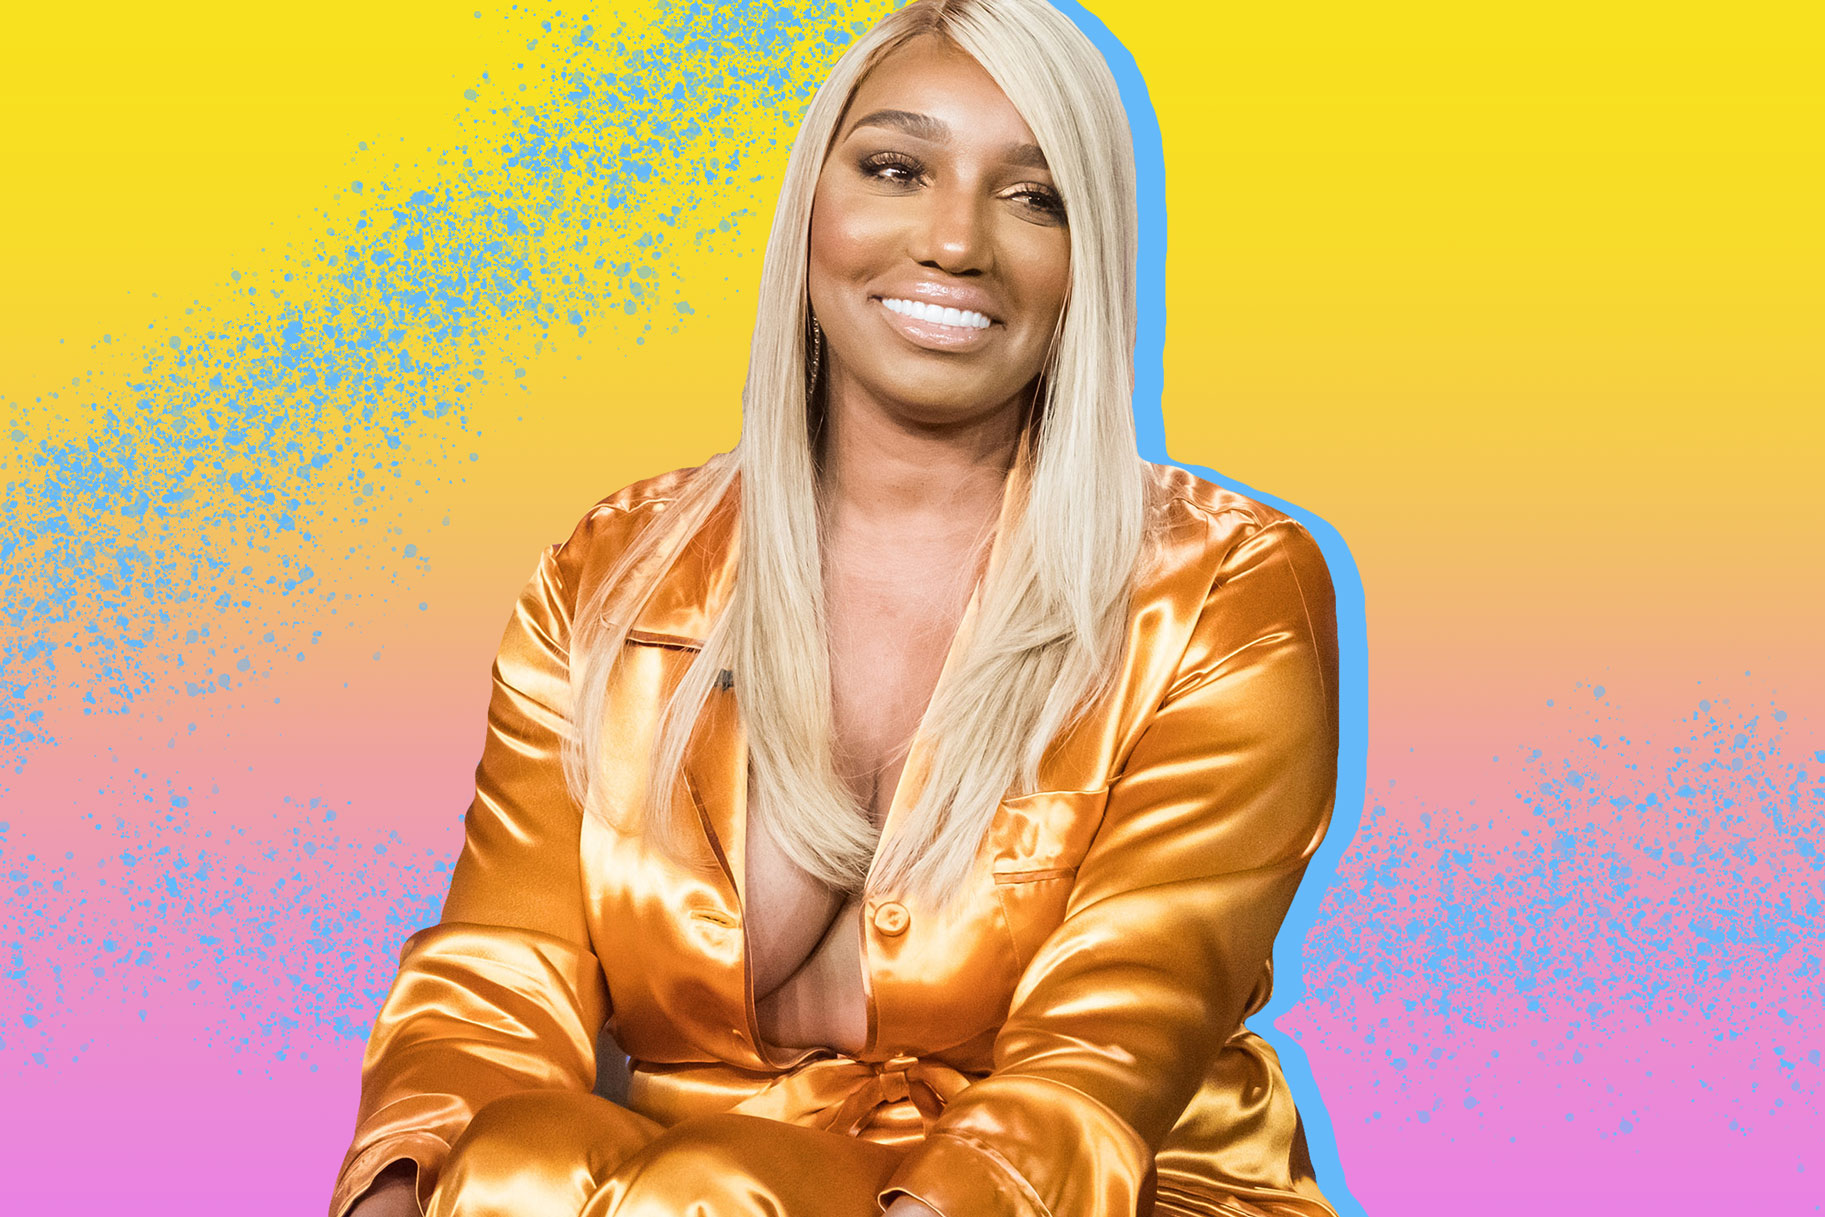 NeNe Leakes Breaks The Internet With Her Saggitarius Energy - She's Flaunting Her Goodies In Blue Lingerie For Her Birthday